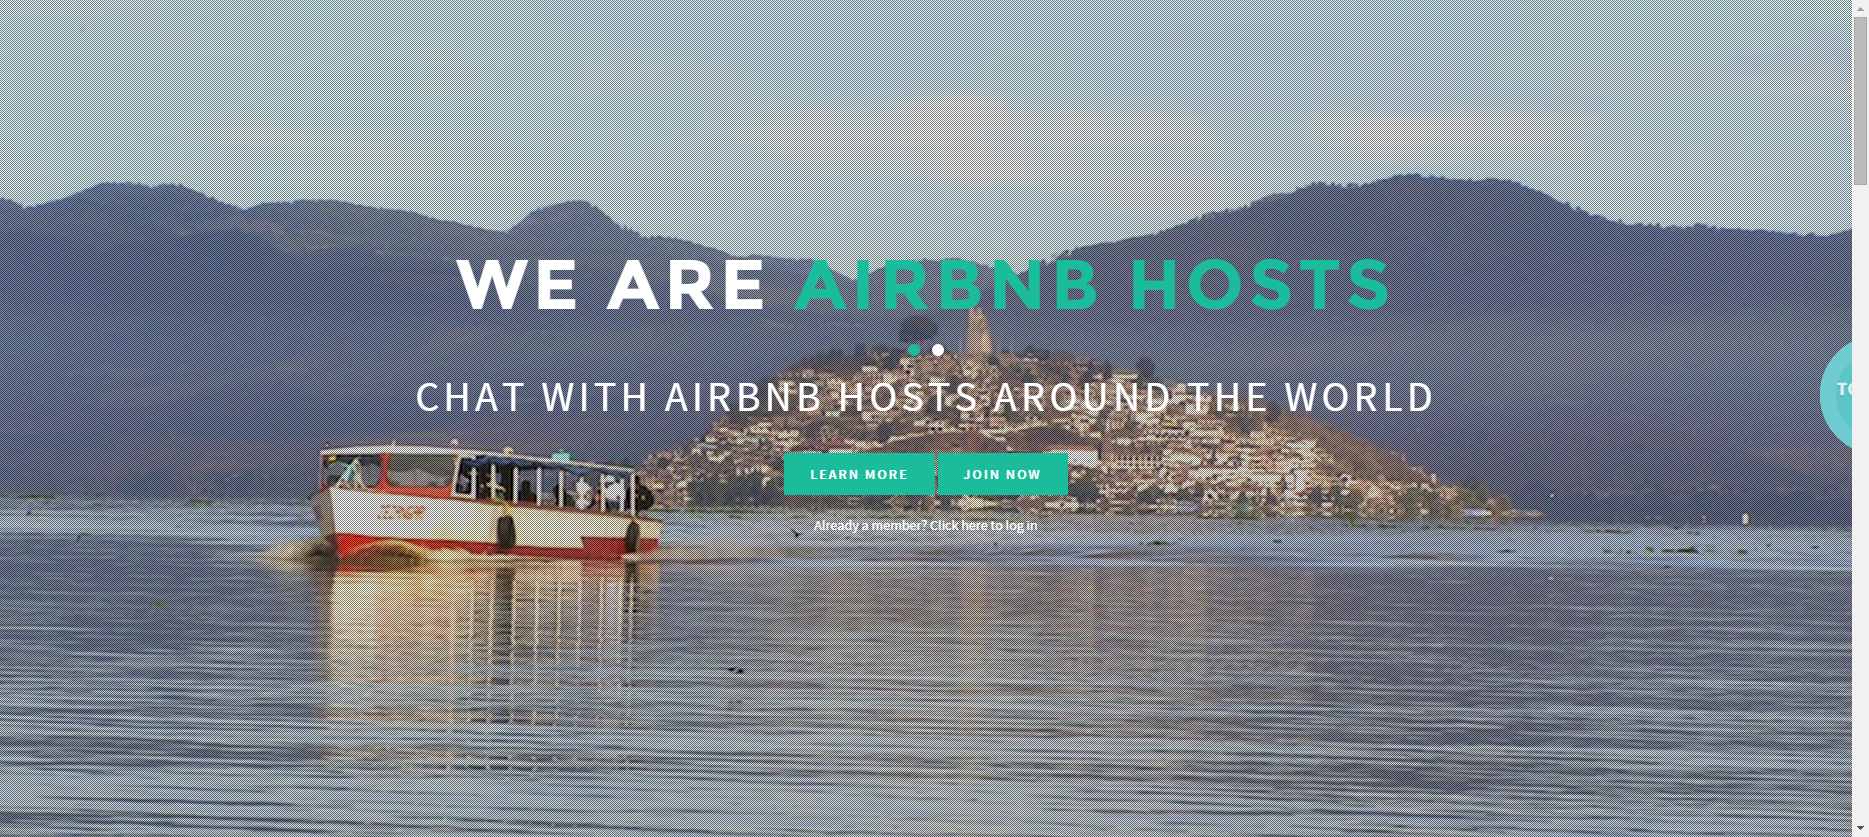 Travelers Chat- Chat with AirBnB hosts around the world